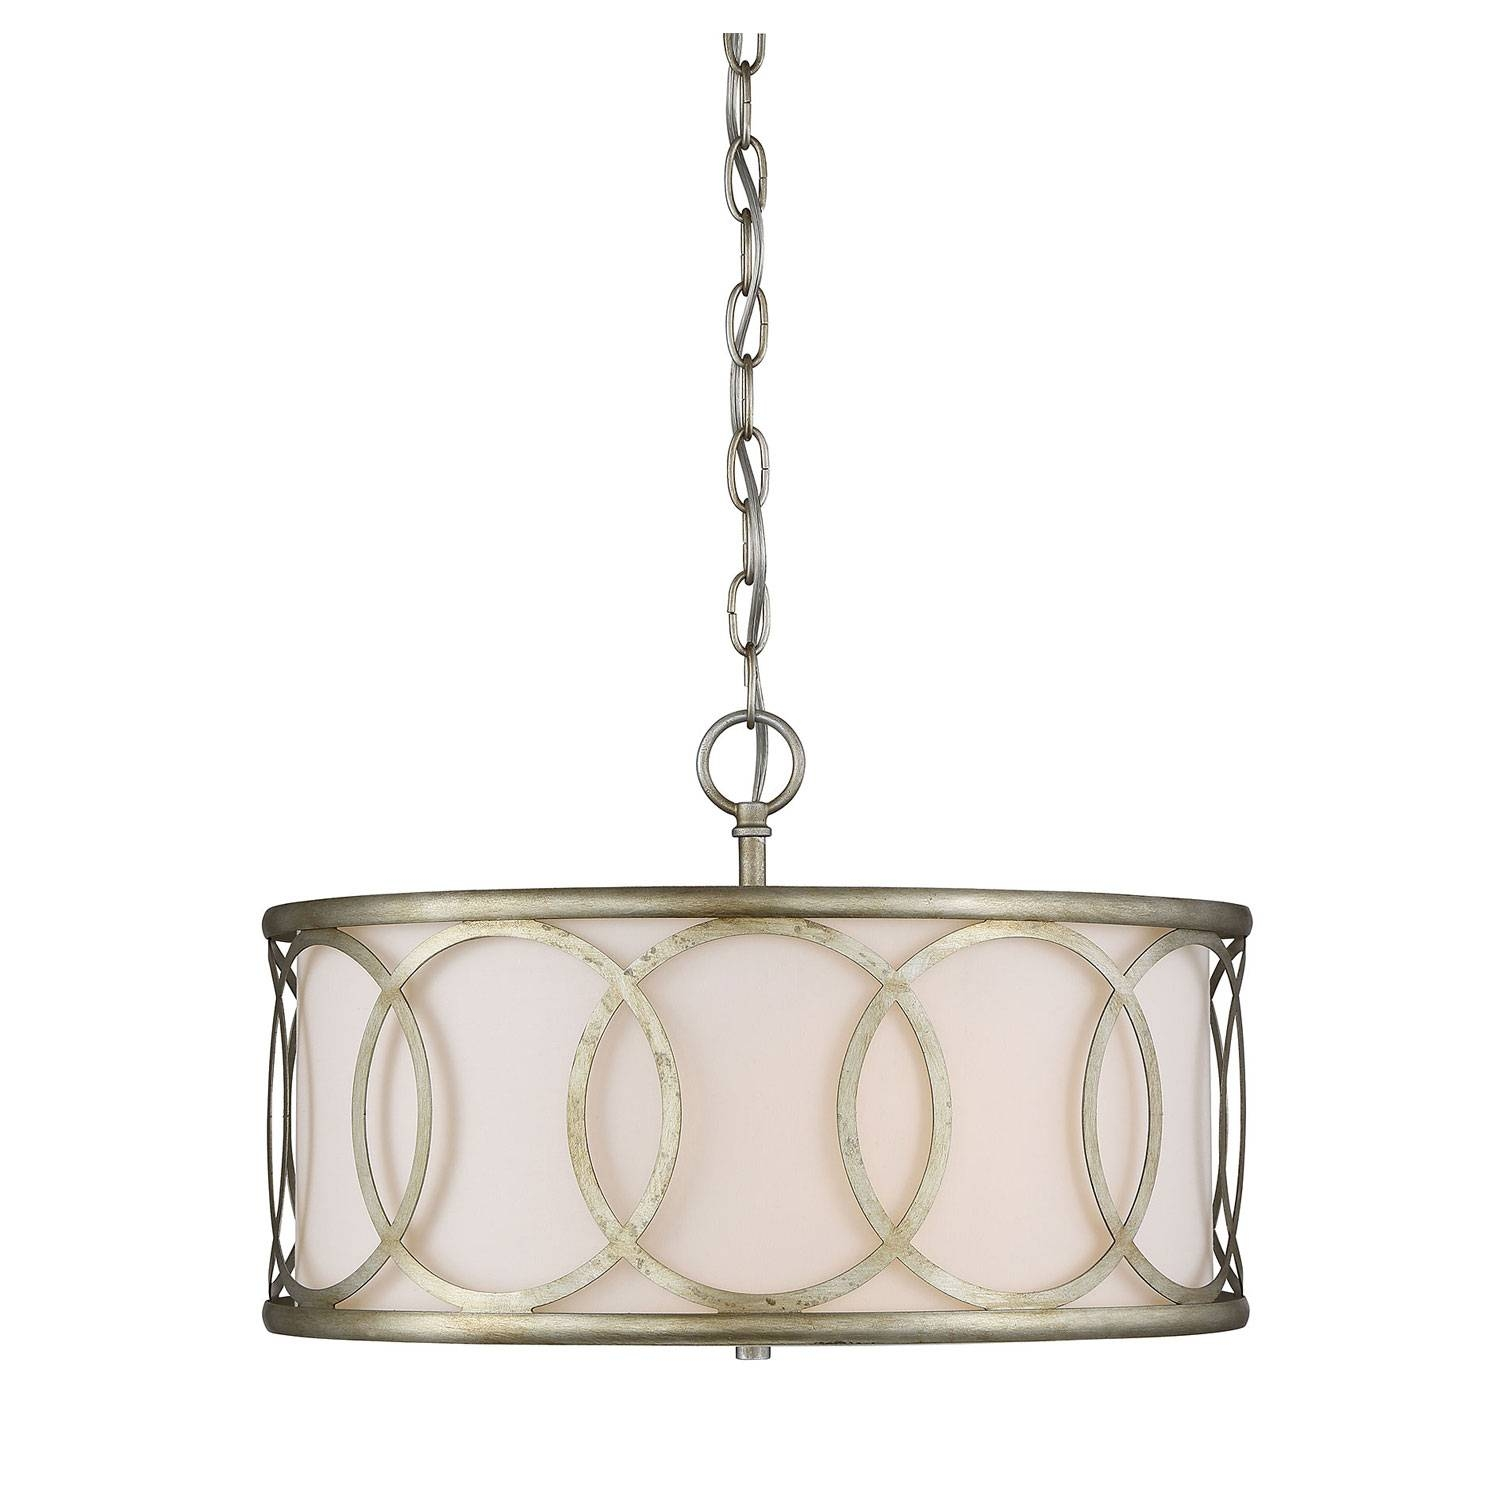 Drum Pendant Lighting: Drum Shade Pendant Lights | Bellacor intended for Barrel Pendant Lights (Image 9 of 15)